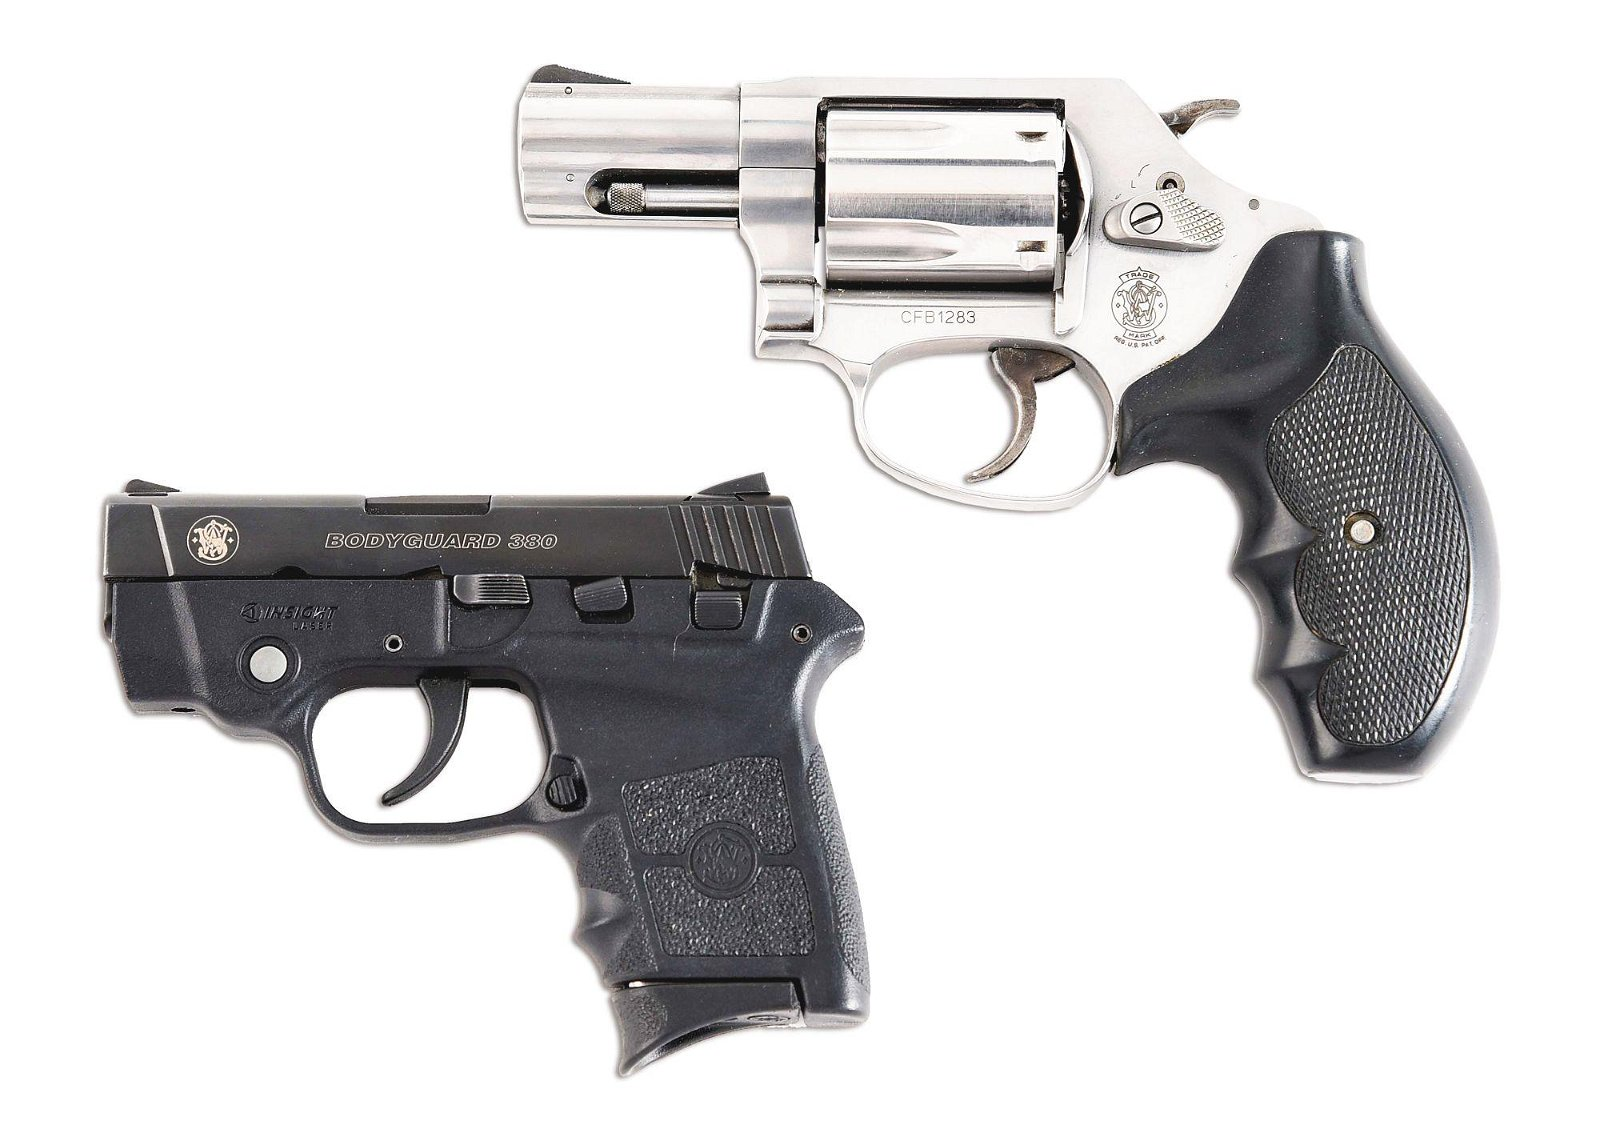 (M) LOT OF 2: SMITH AND WESSON 60-14 REVOLVER AND